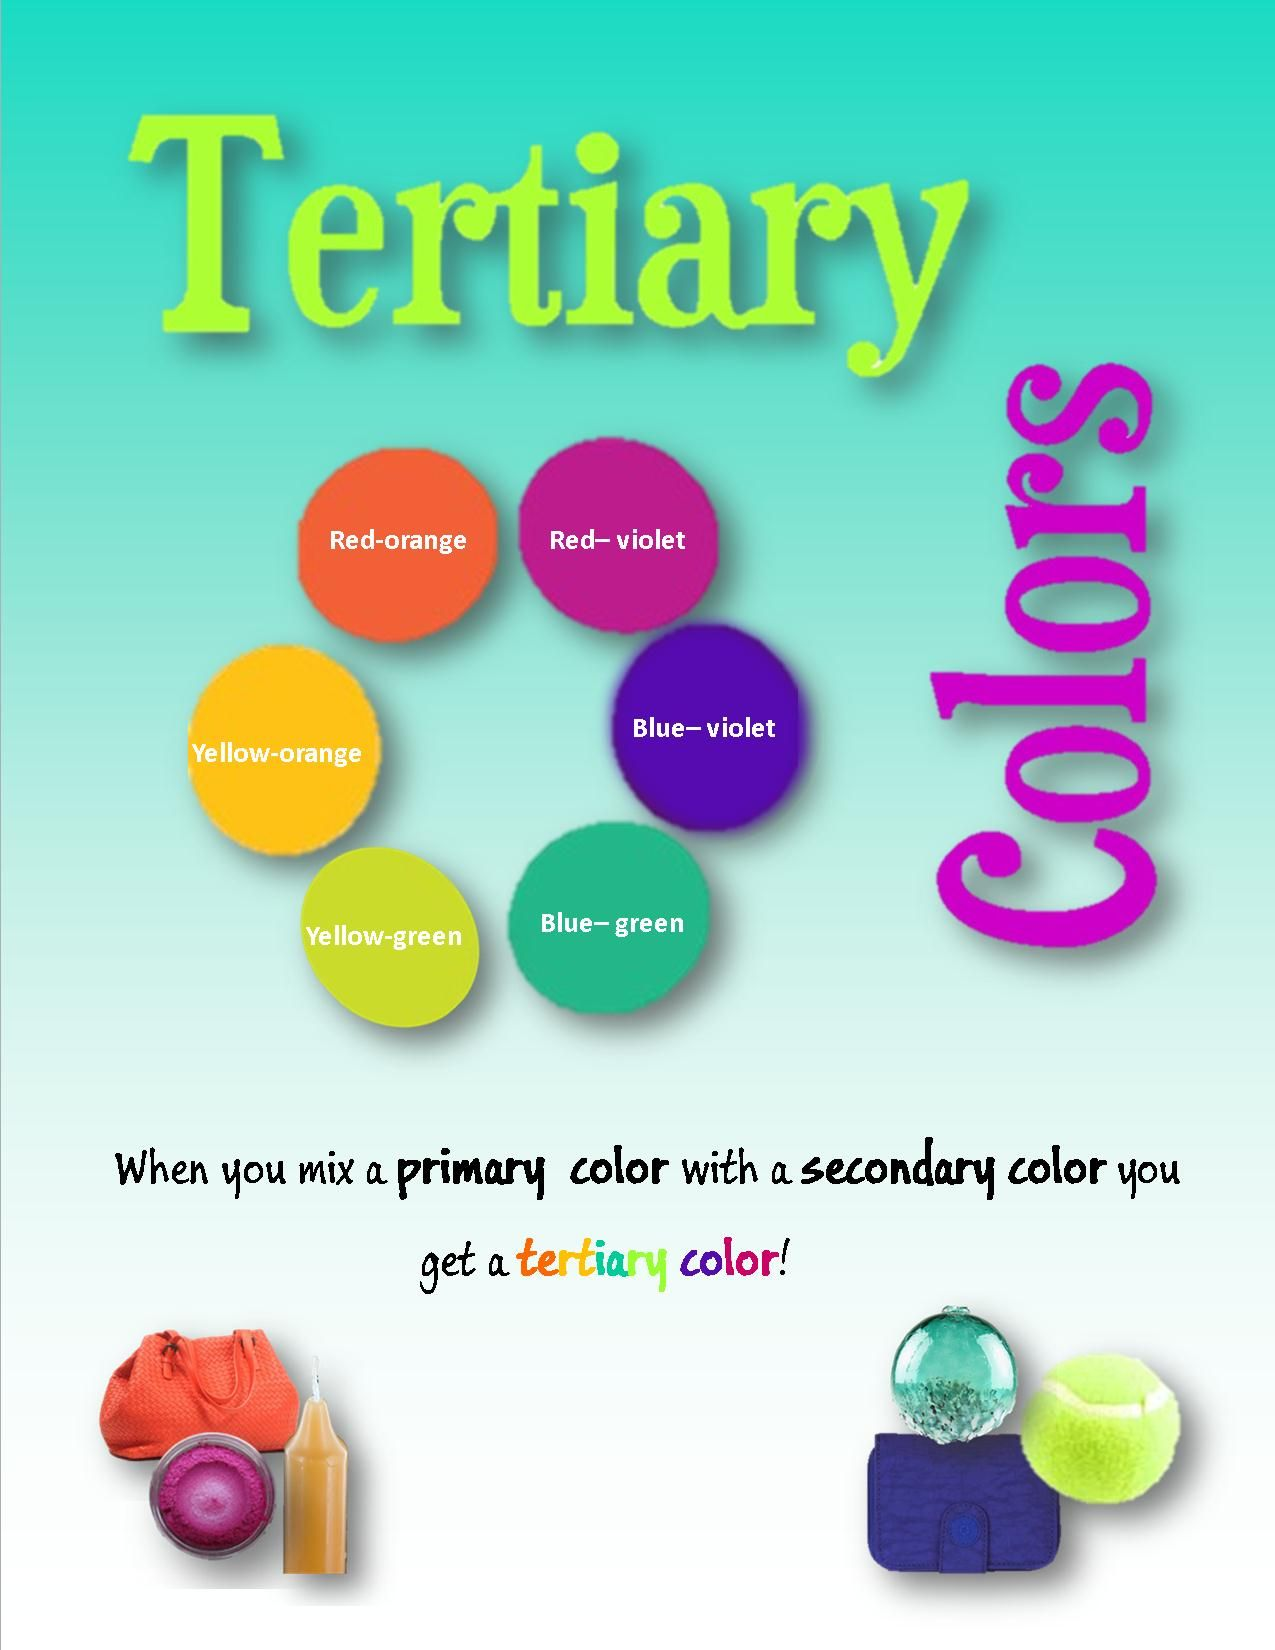 Tertiary Colors Made By Mixing A Primary And Secondary Color Is